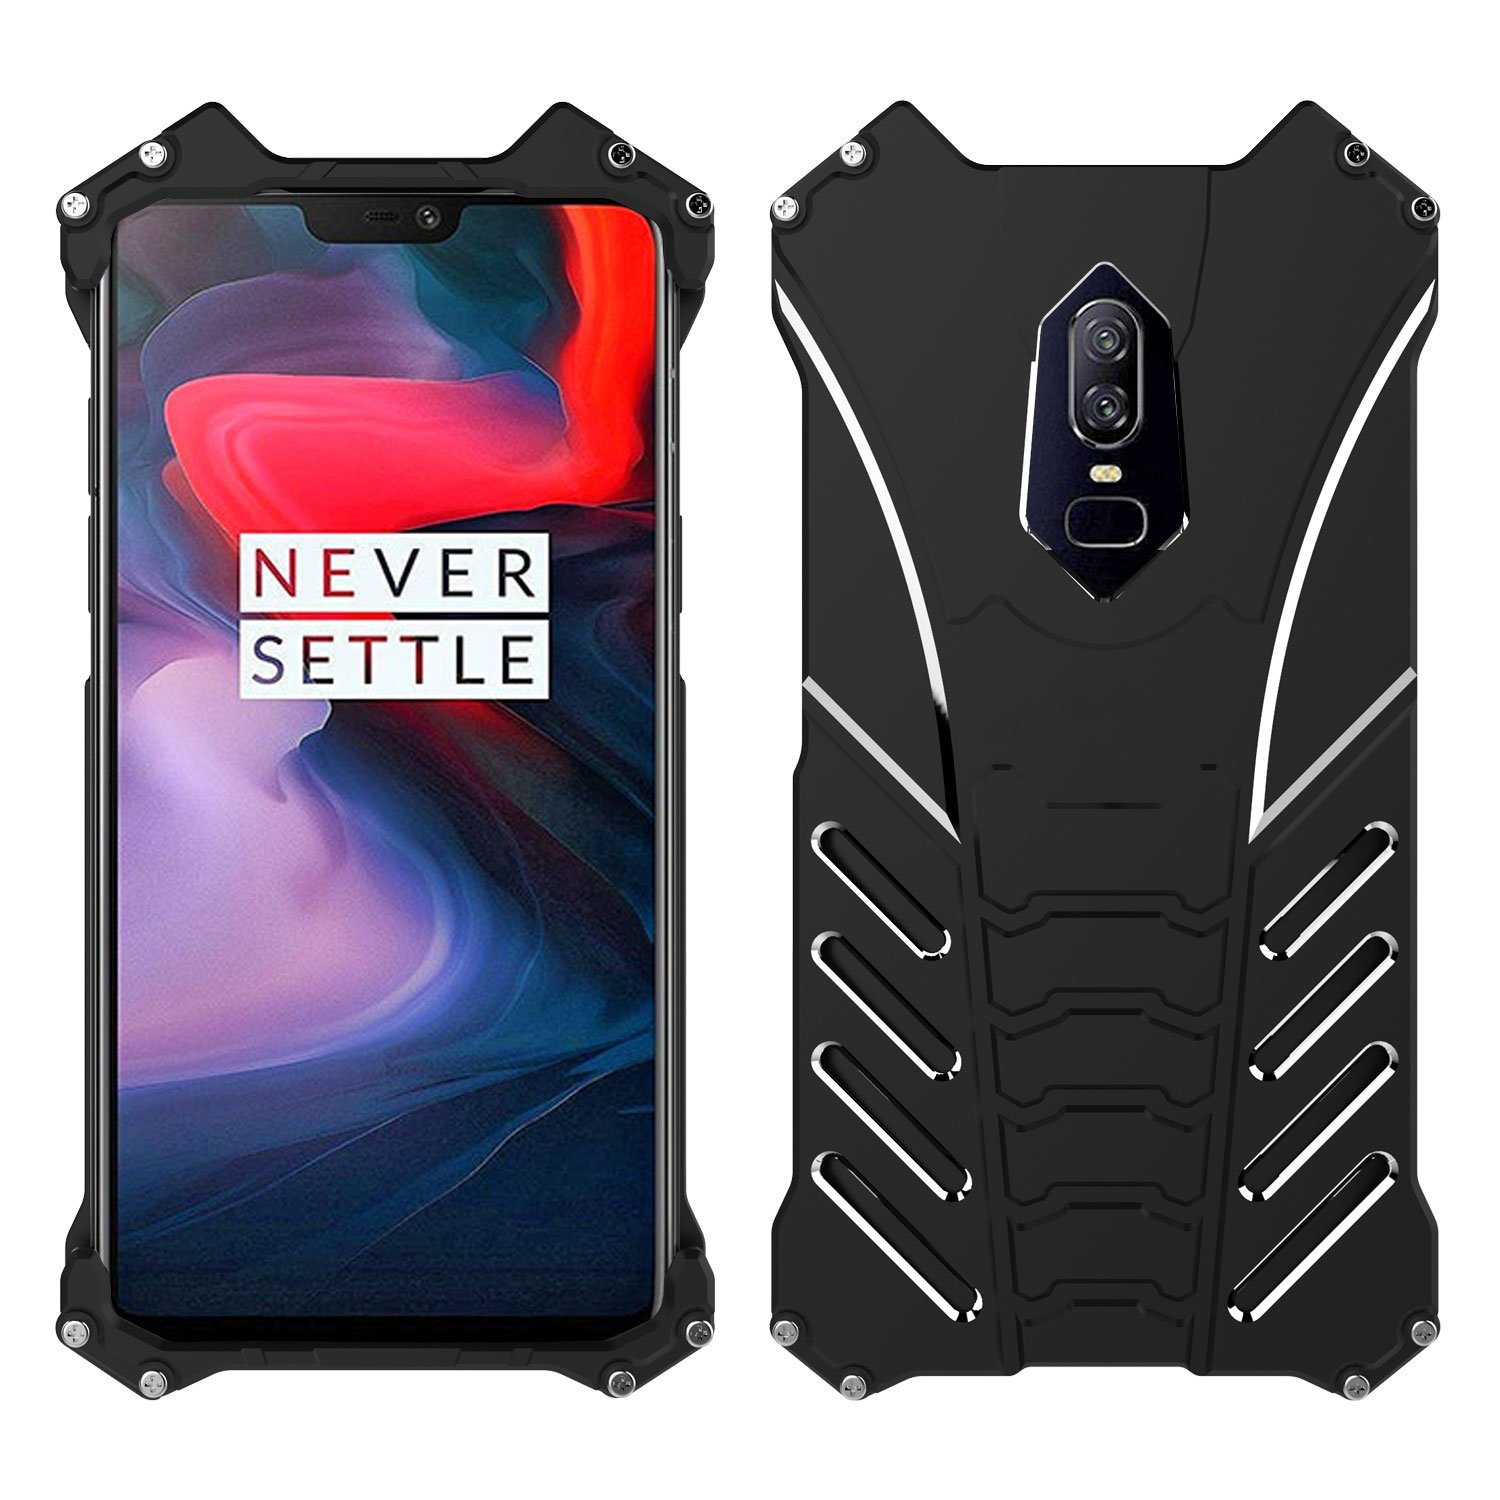 reputable site ee41e 681b8 Simicoo OnePlus 6 Aluminum Metal Bumper Case Military Shockproof Heavy Duty  Armor Rugged Tough Slim Cool Outdoor sport Hybrid Cover For One plus 6 1+6  ...